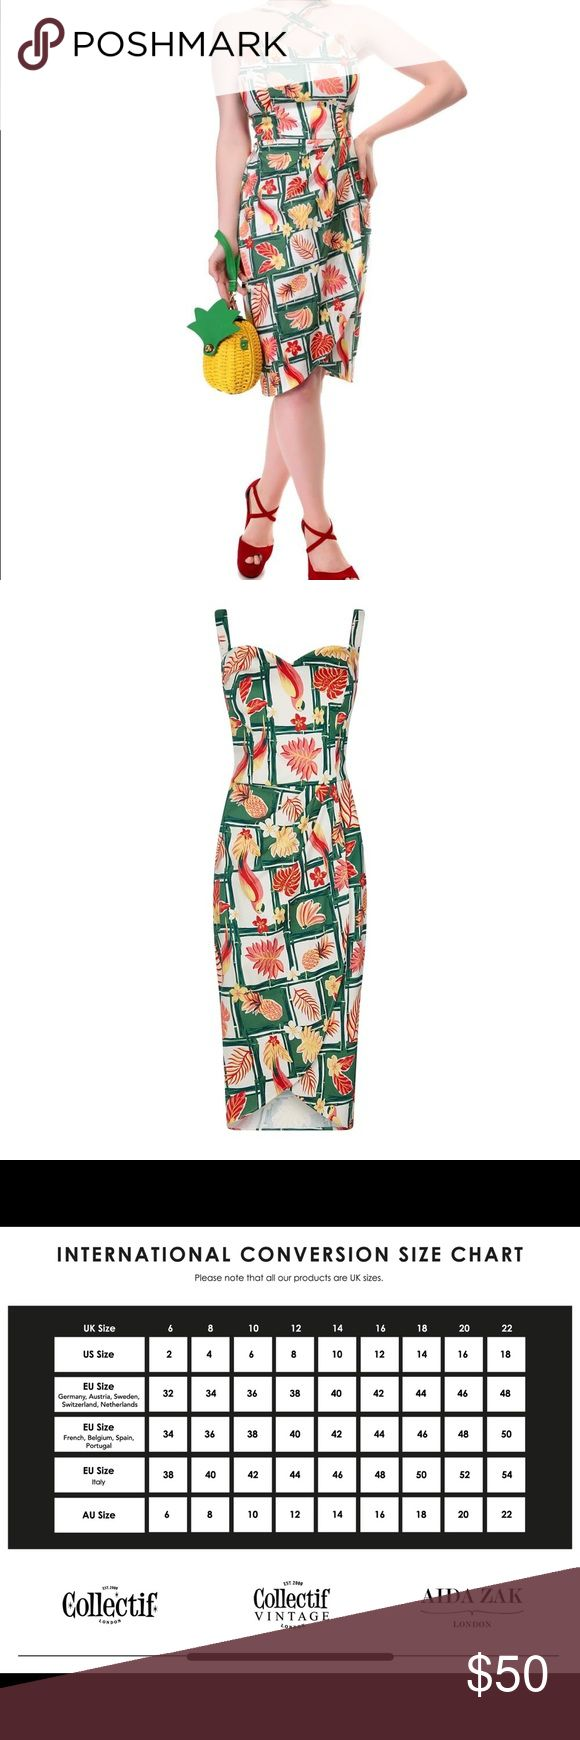 Collectif Tropical Sarong Bamboo Dress Never worn. Tags still attached.. UK size…